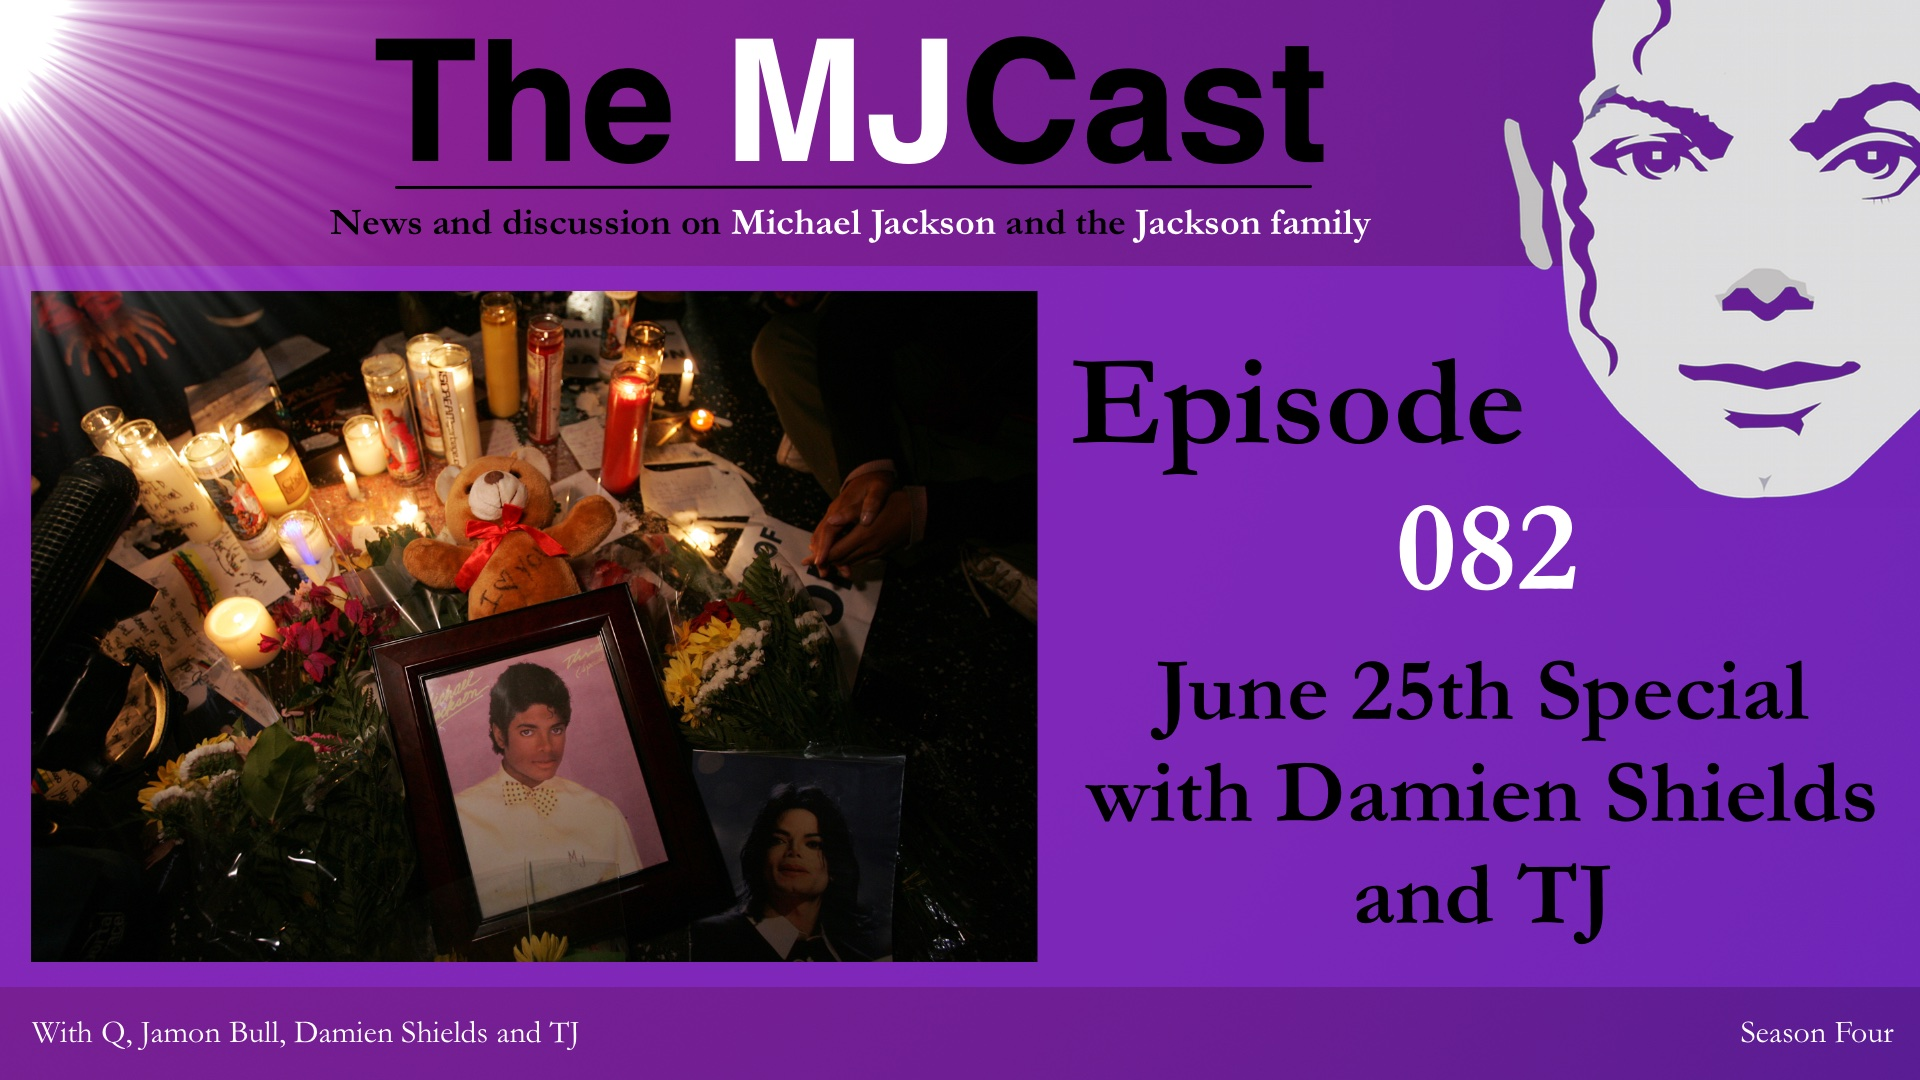 Episode 082 – June 25th Special with Damien Shields and TJ